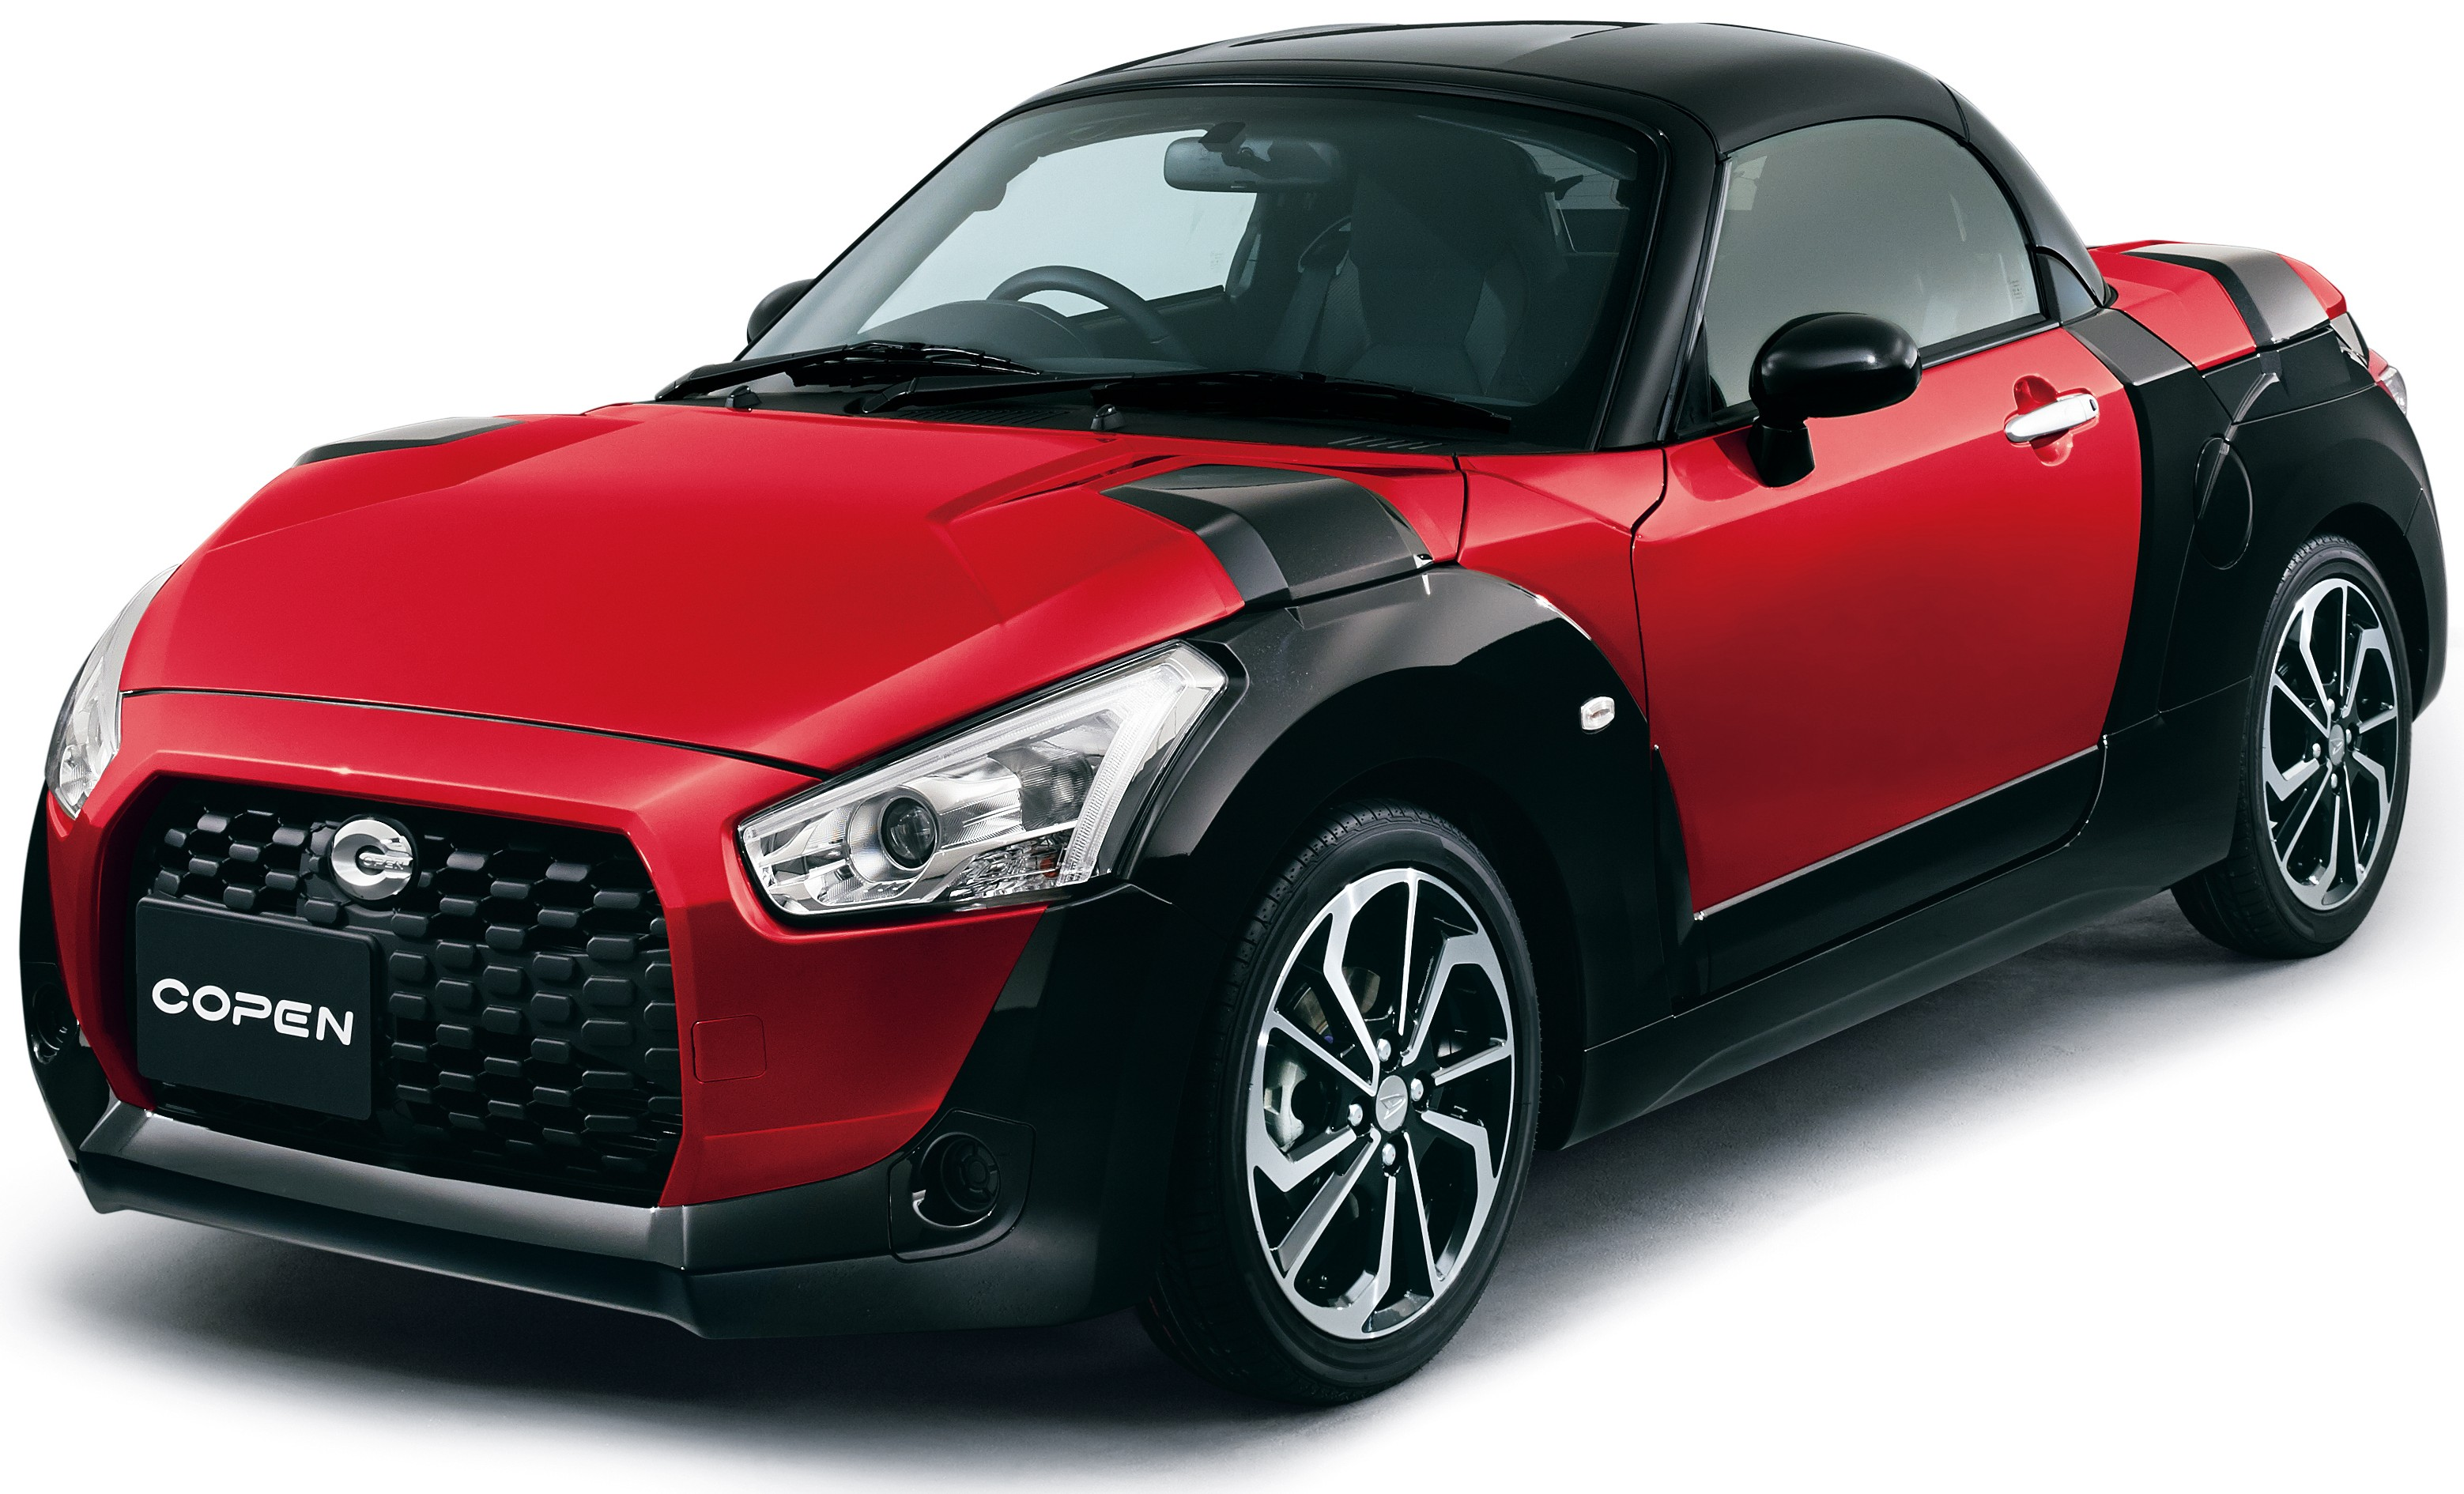 Daihatsu Copen XPlay New Clothes For Kei Roadster Image